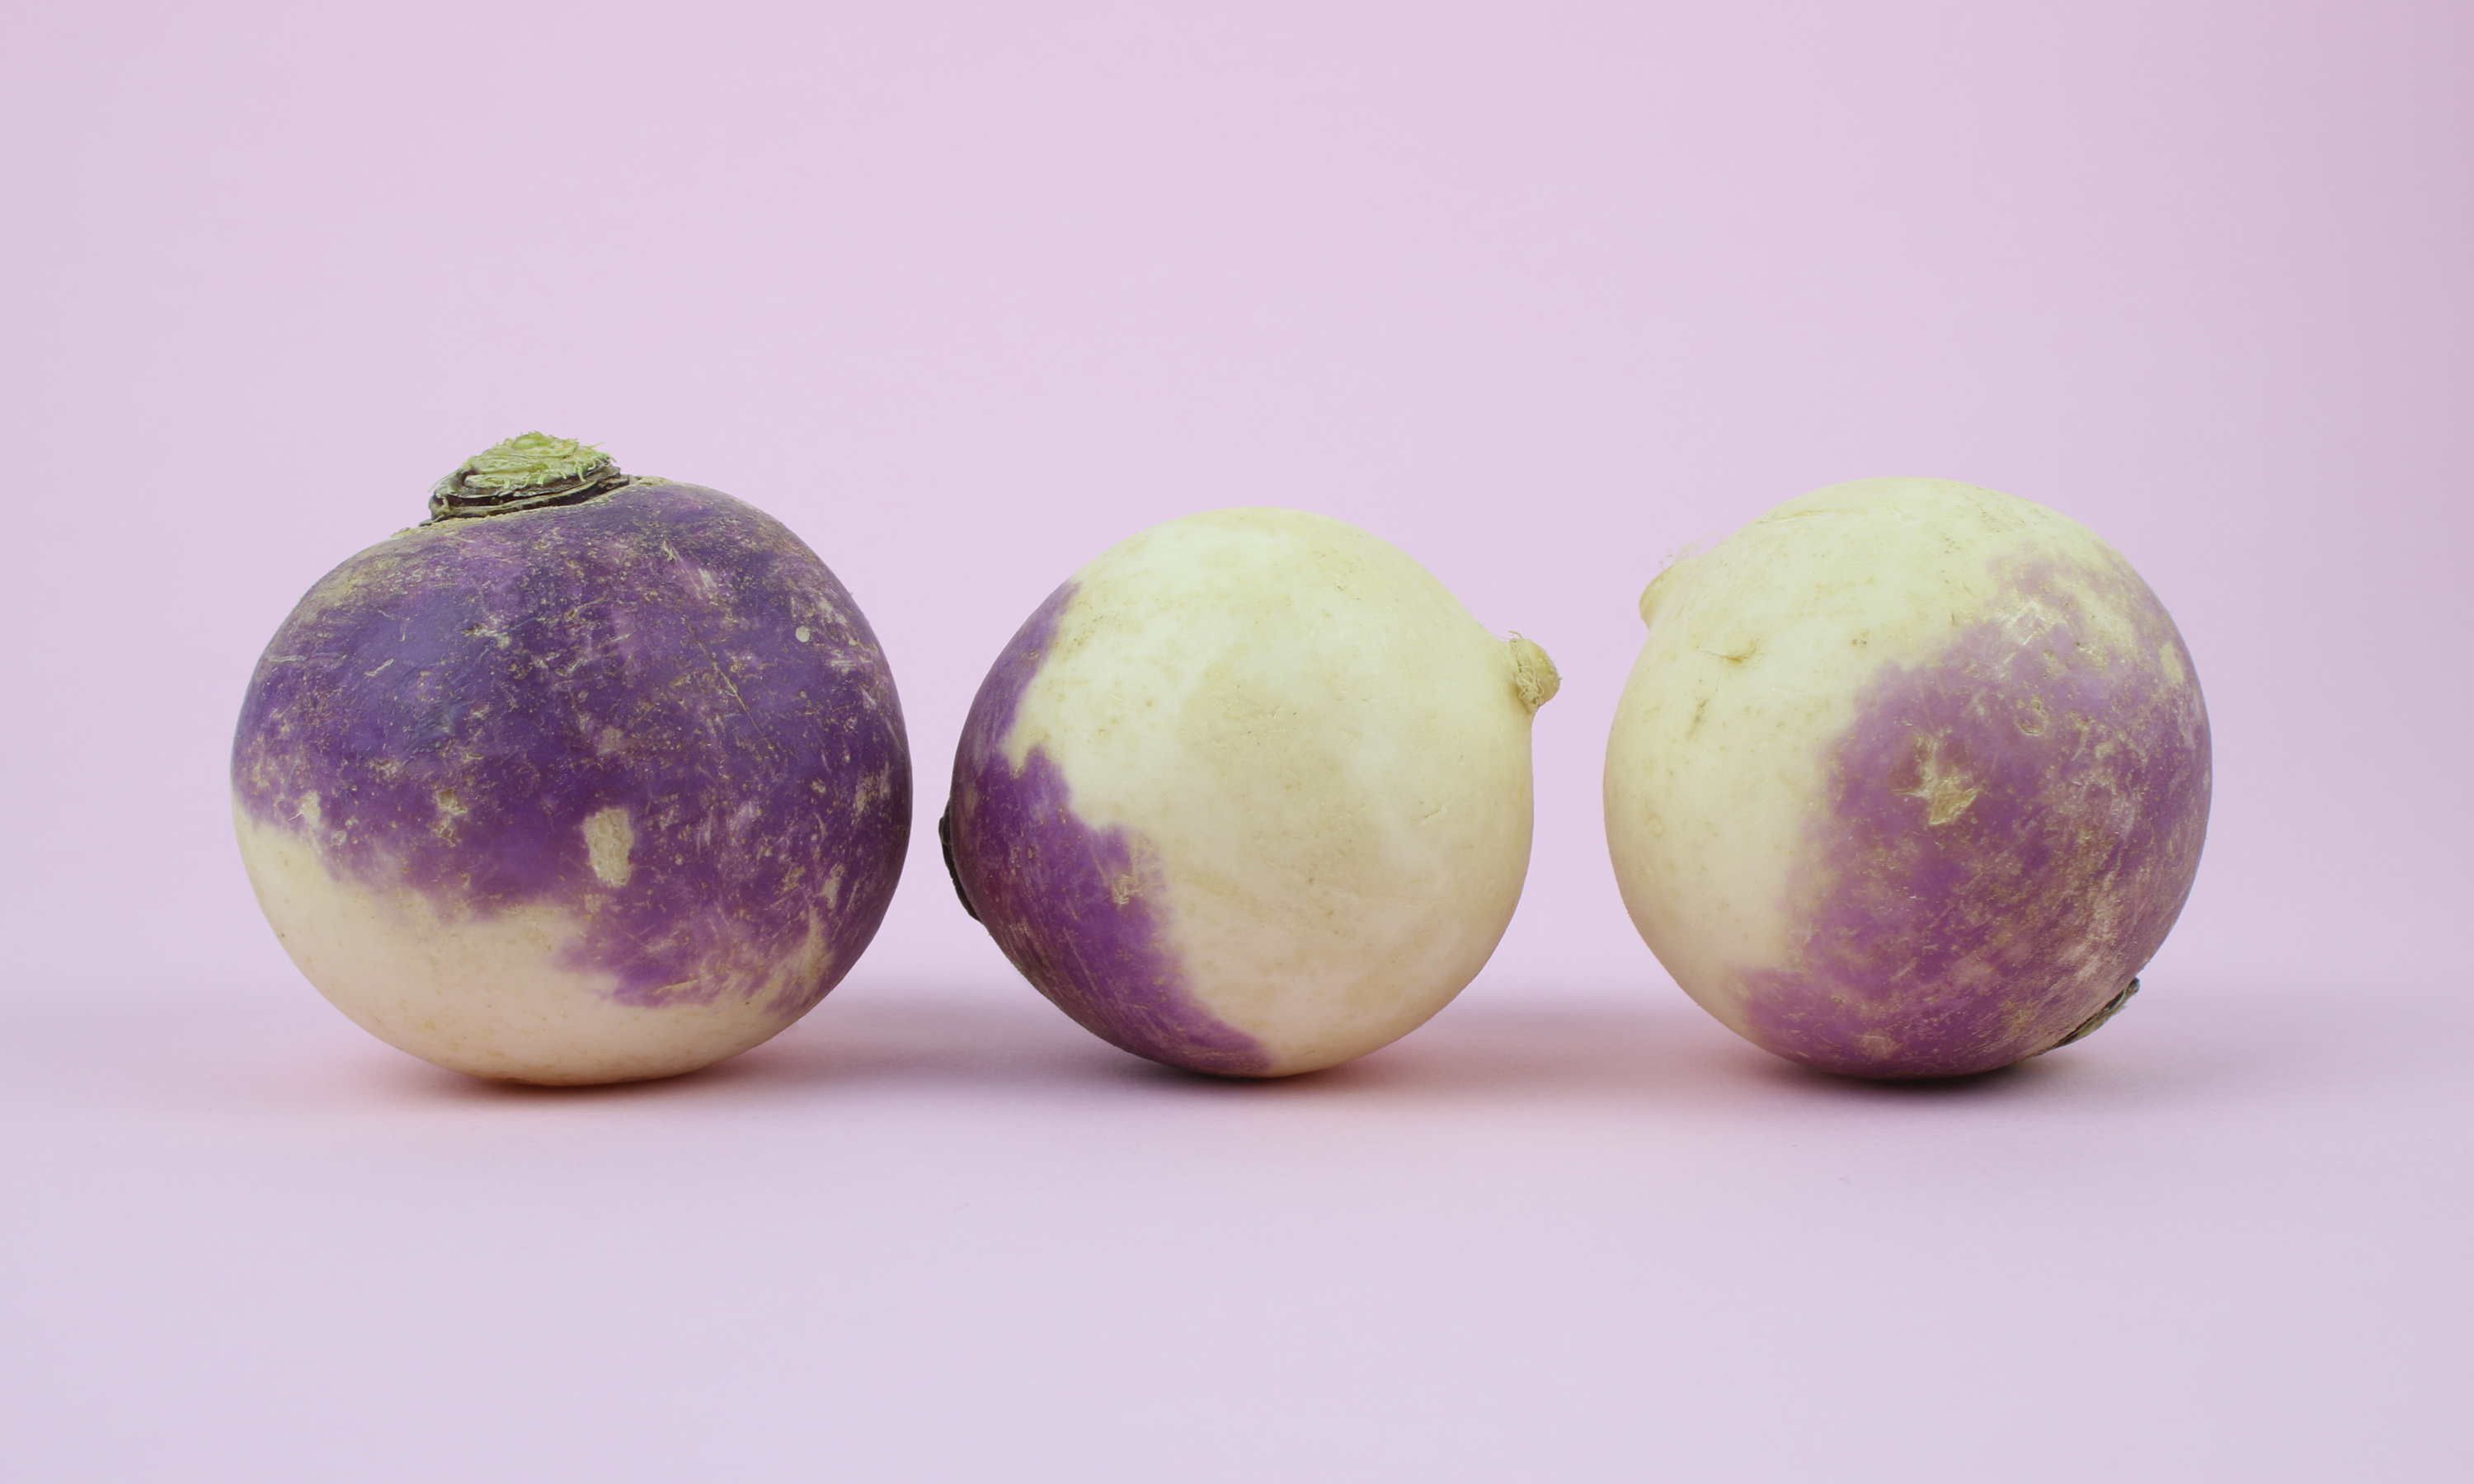 pickled-turnips-branding-turnips-photo-rather-splendid